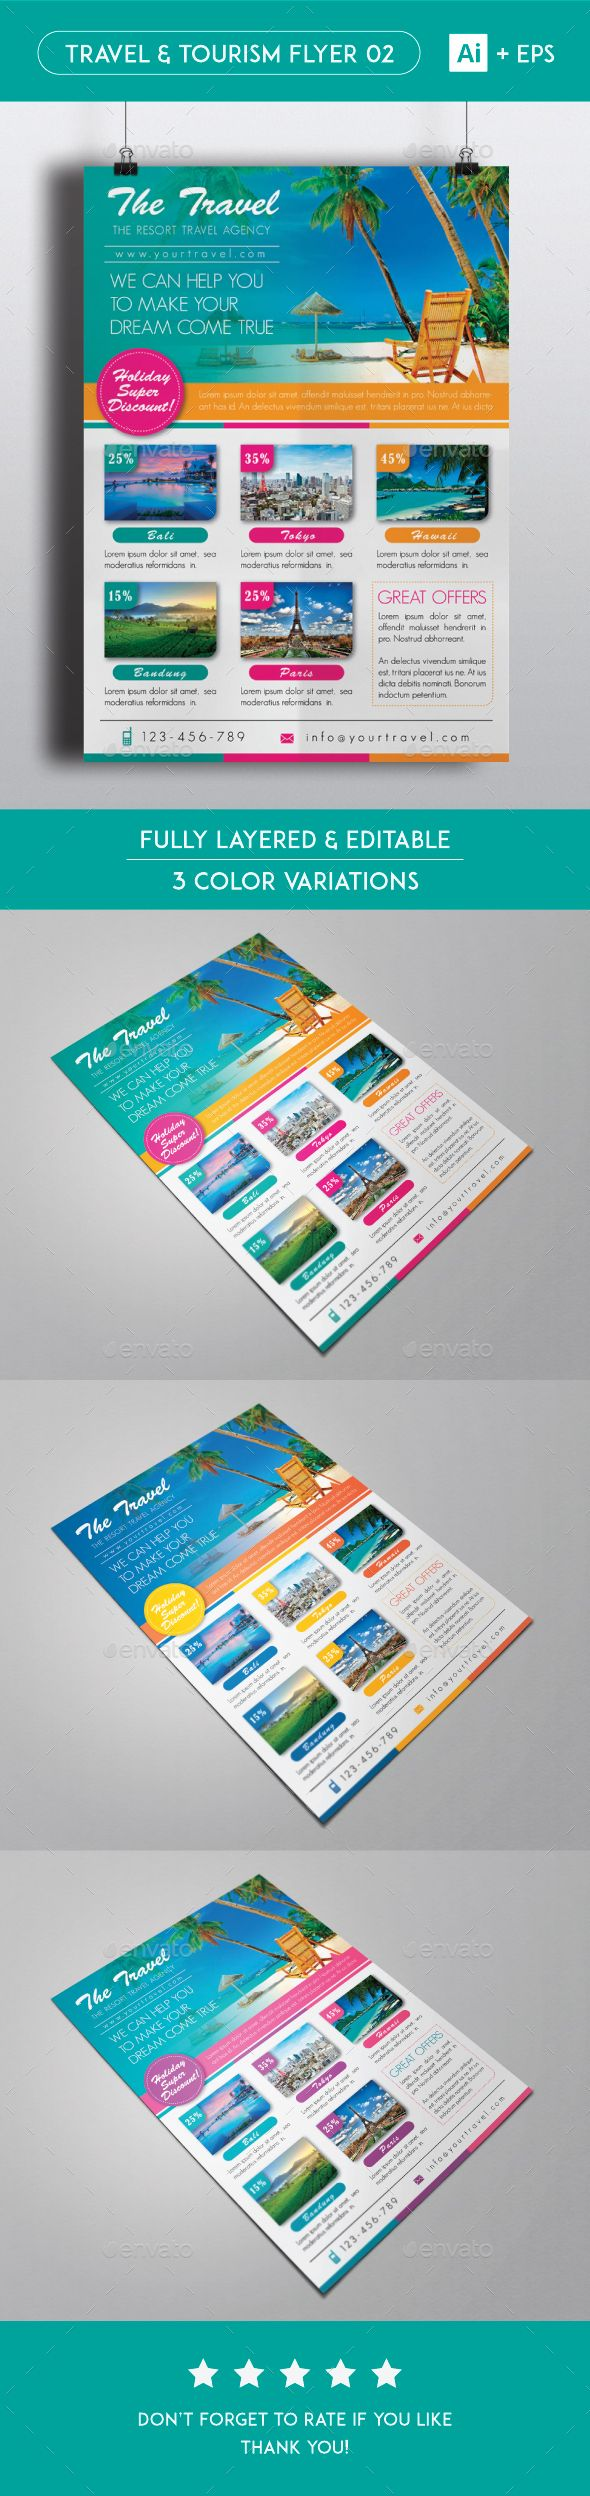 Travel Tourism Flyer 02 Graphicriver Pinterest Tourism